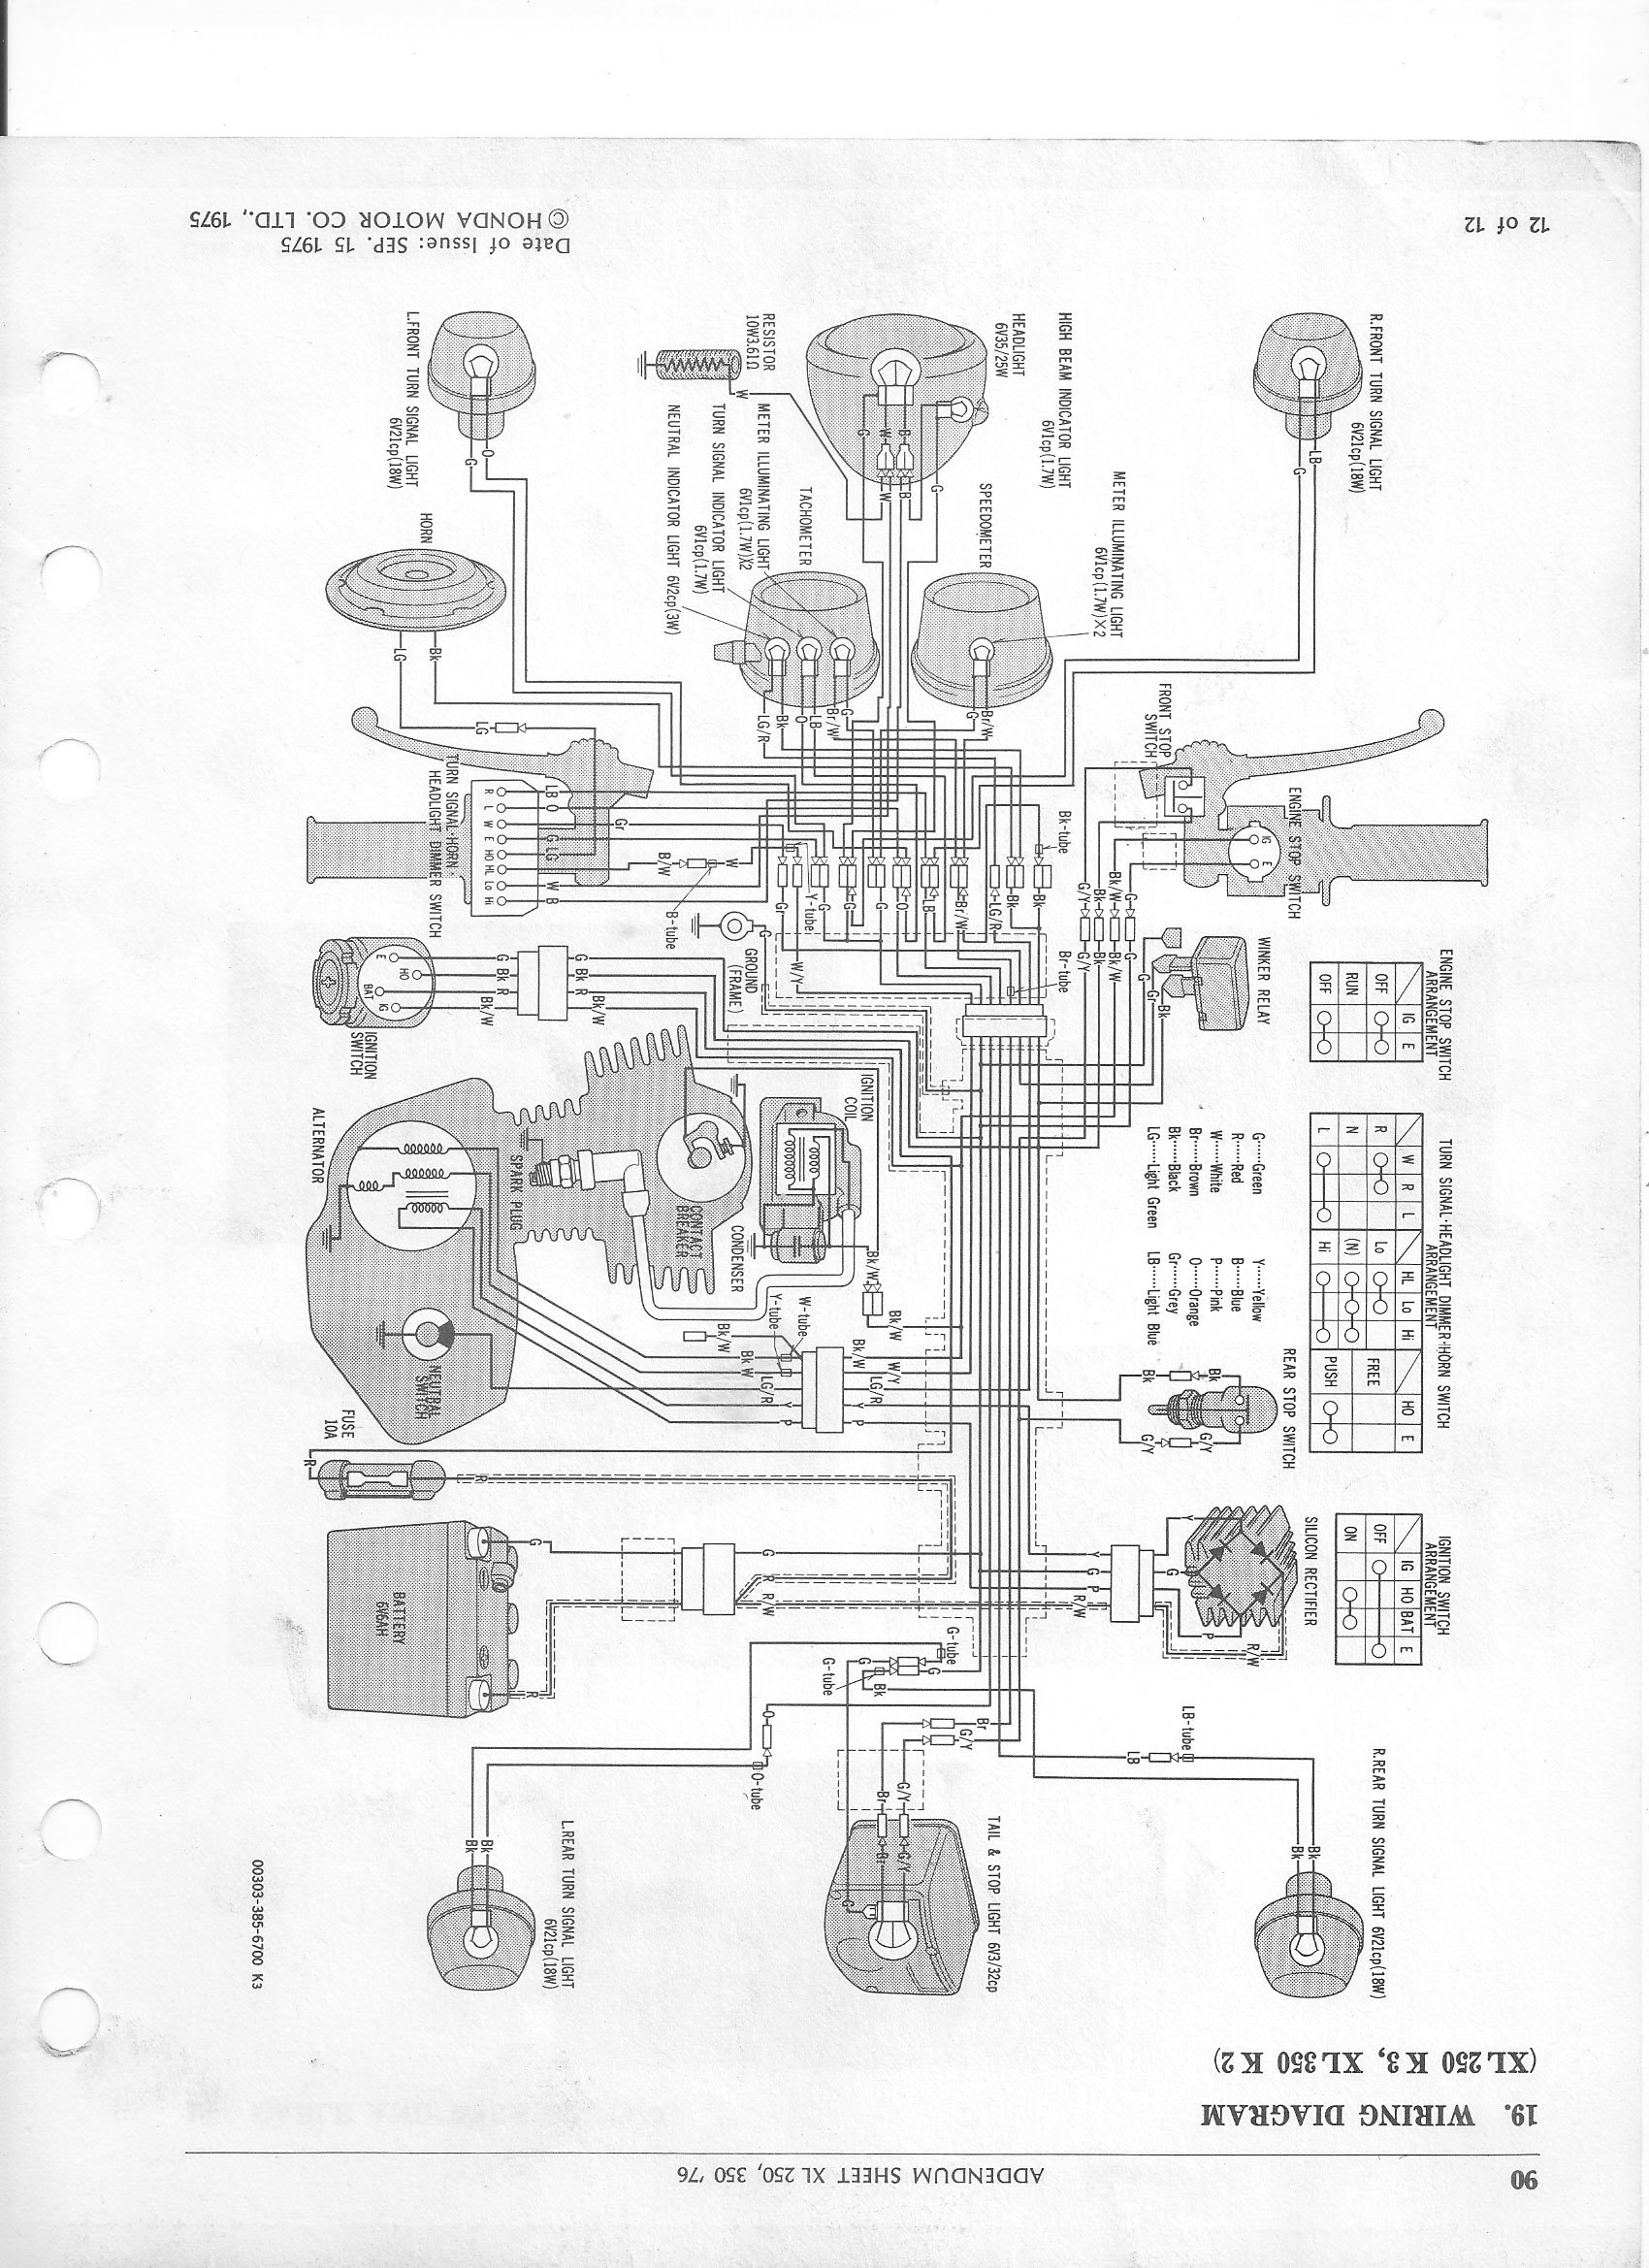 Honda Ca77 Engine Diagram Auto Electrical Wiring 1967 Cl360 Imageresizertool Com 1969 300 Dream Cb500